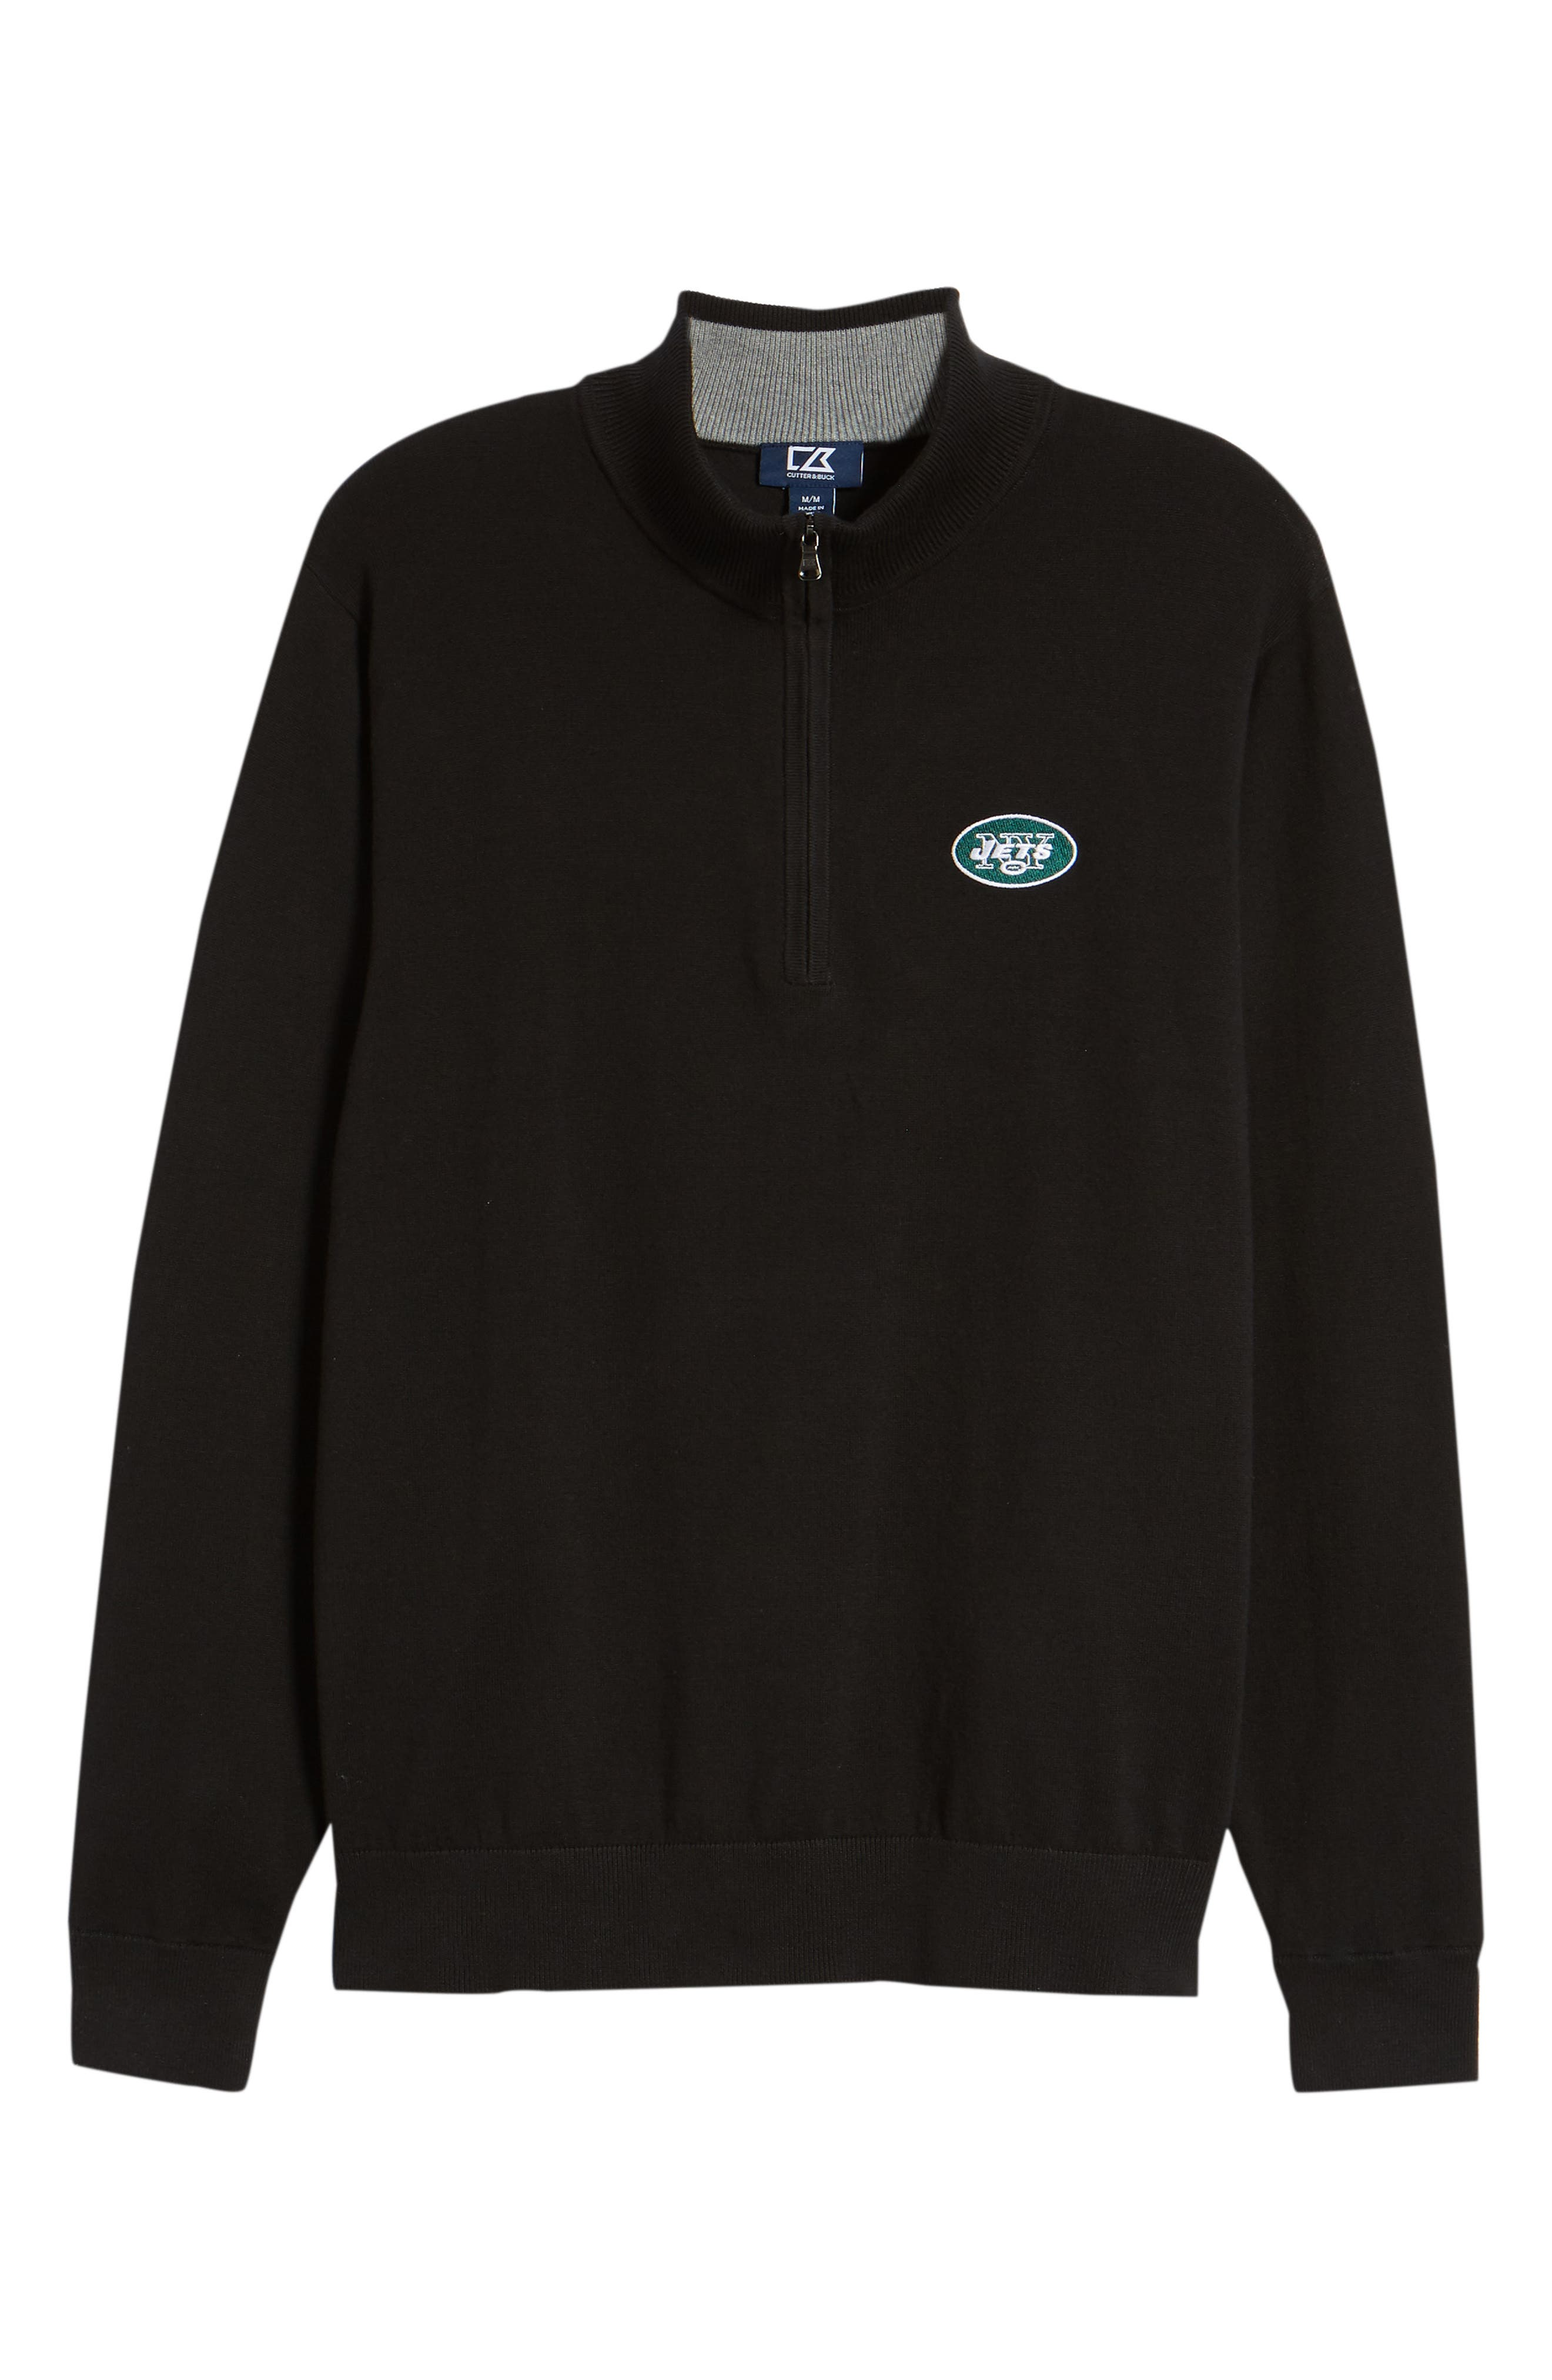 New York Jets - Lakemont Regular Fit Quarter Zip Sweater,                             Alternate thumbnail 6, color,                             BLACK